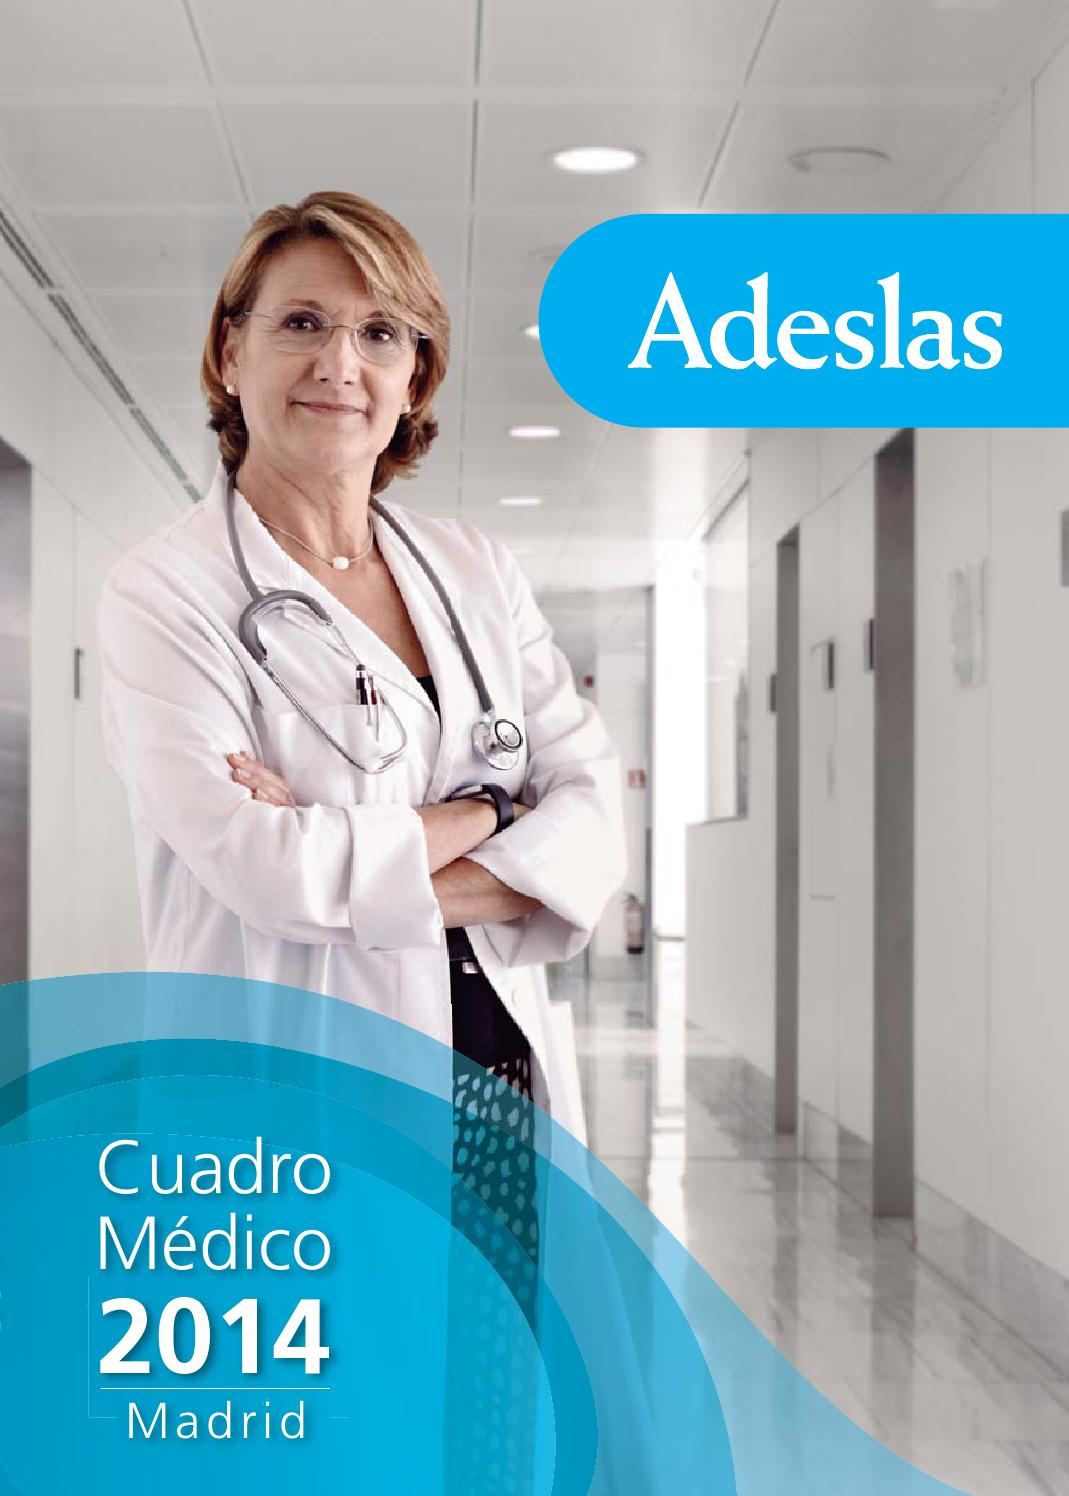 cuadro medico adeslas madrid by esther lopez issuu